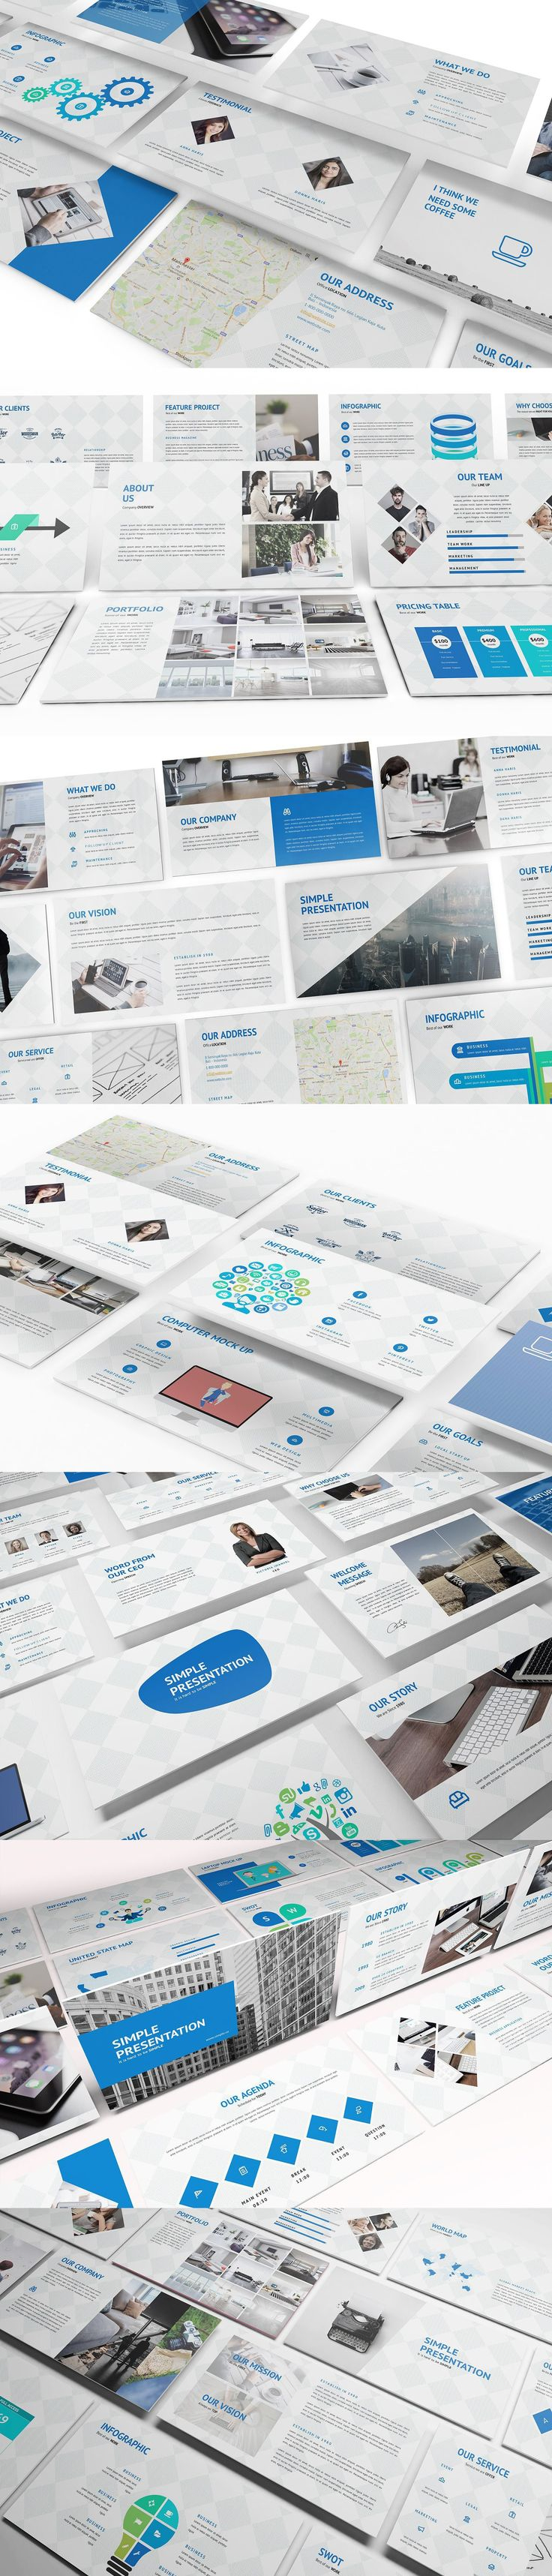 Pin on Infographic Templates